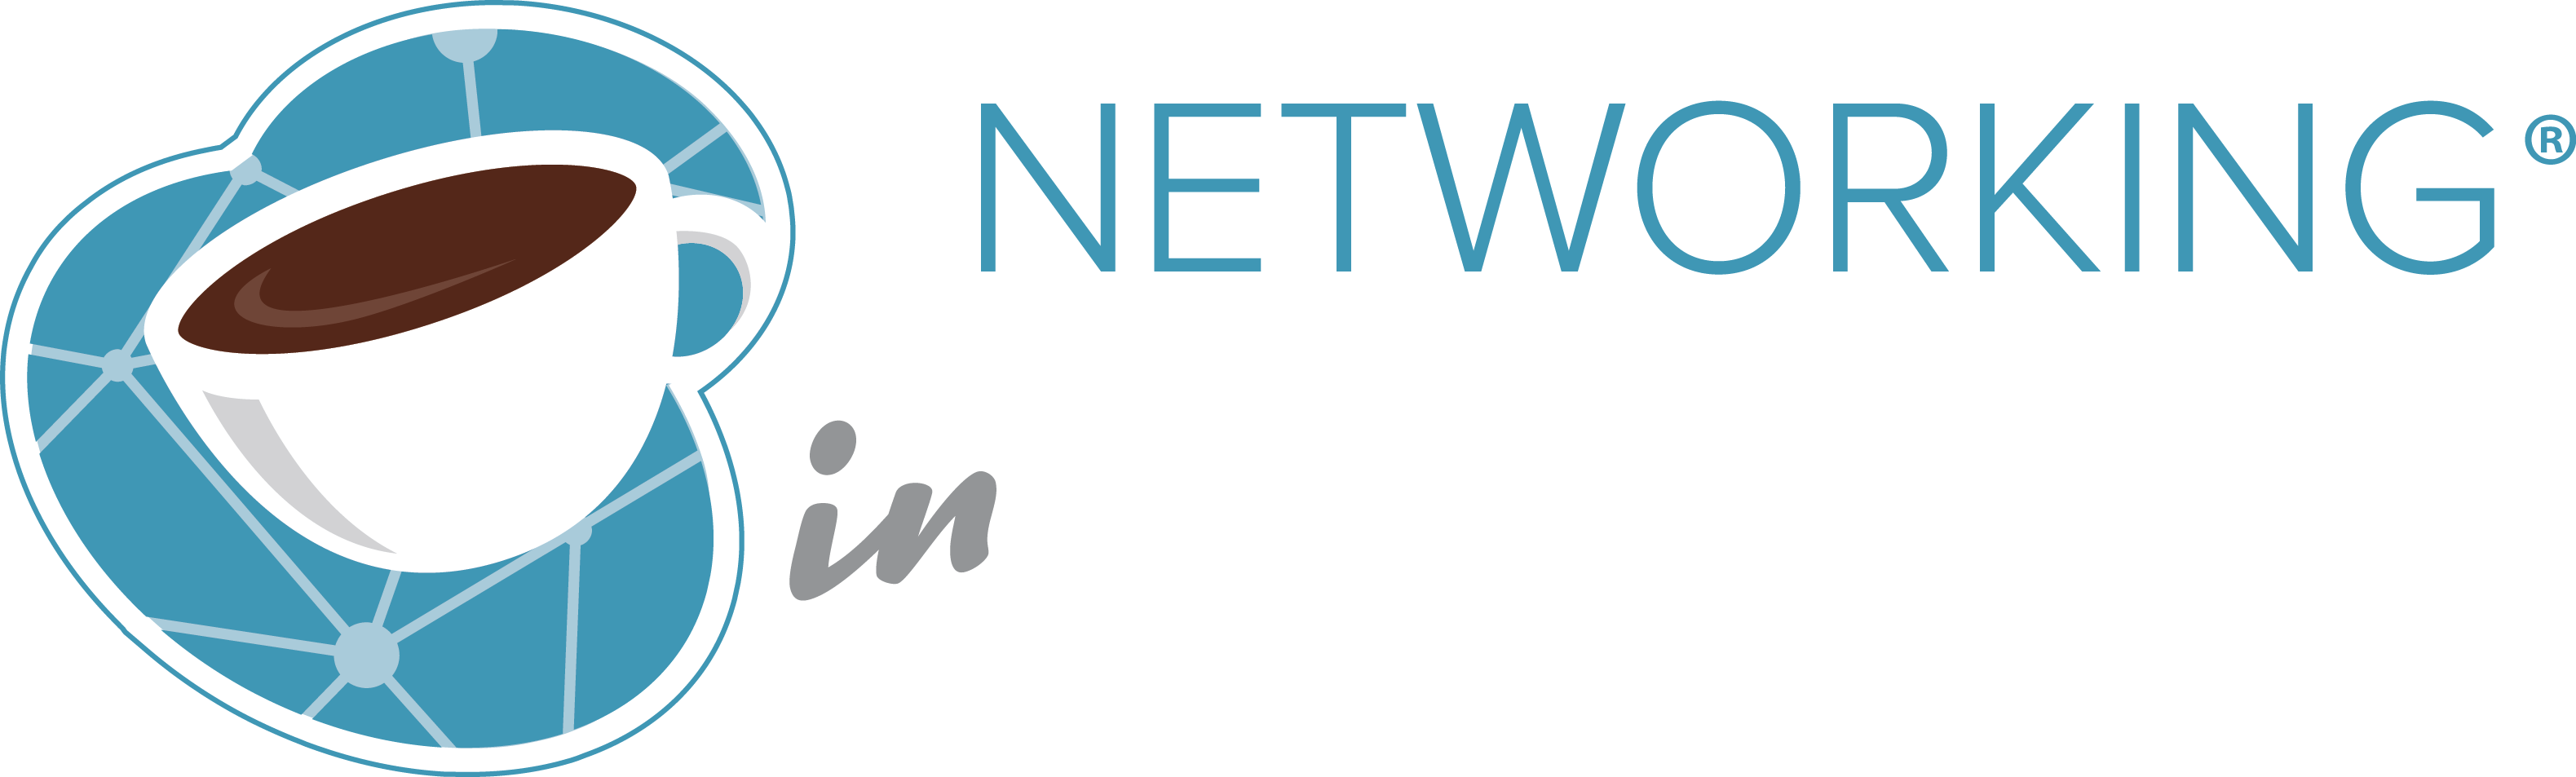 Networking in Diners